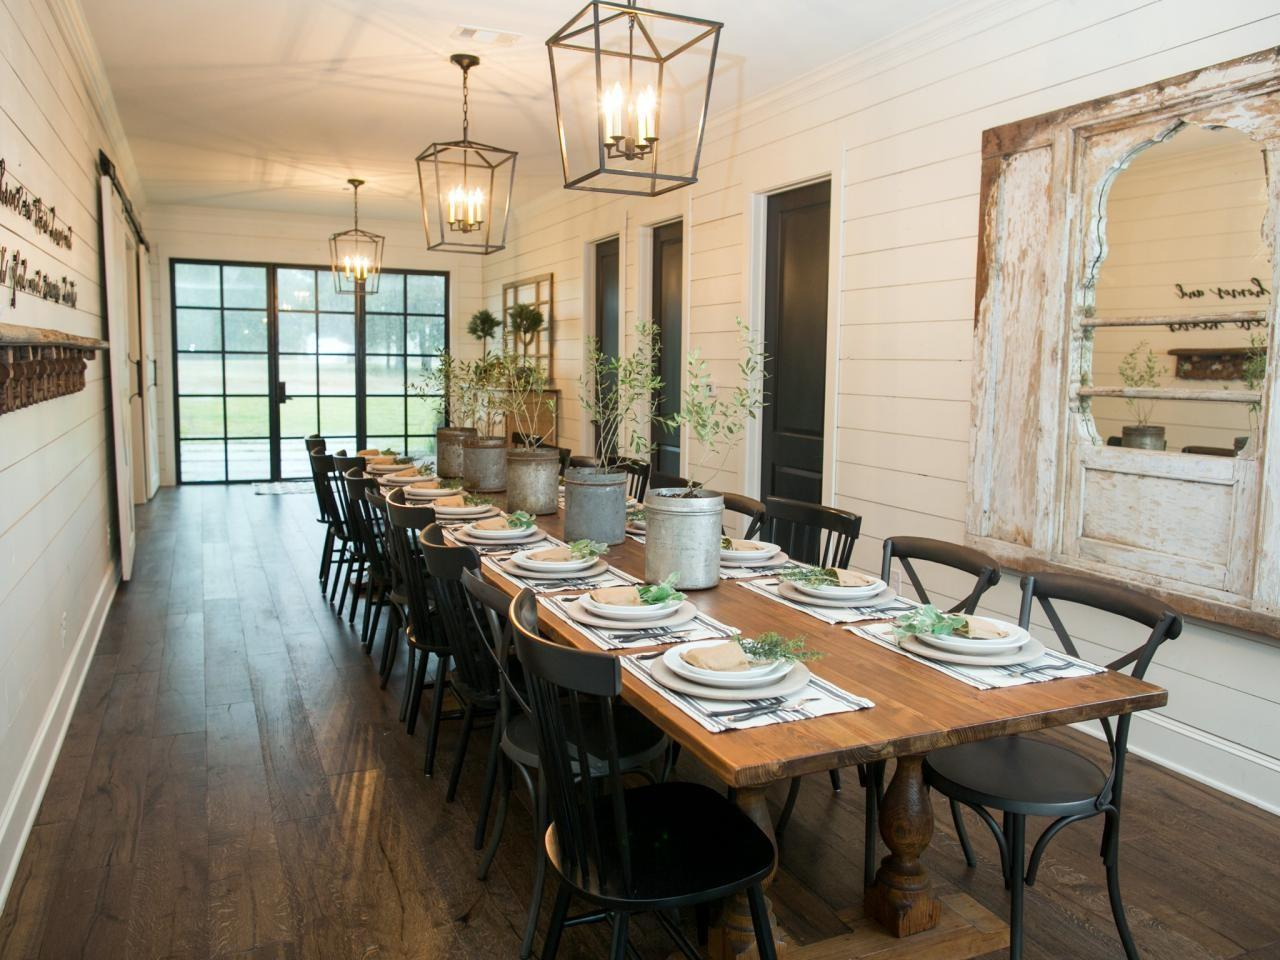 Chip Joanna Gaines Transform Barn Into Rustic Home